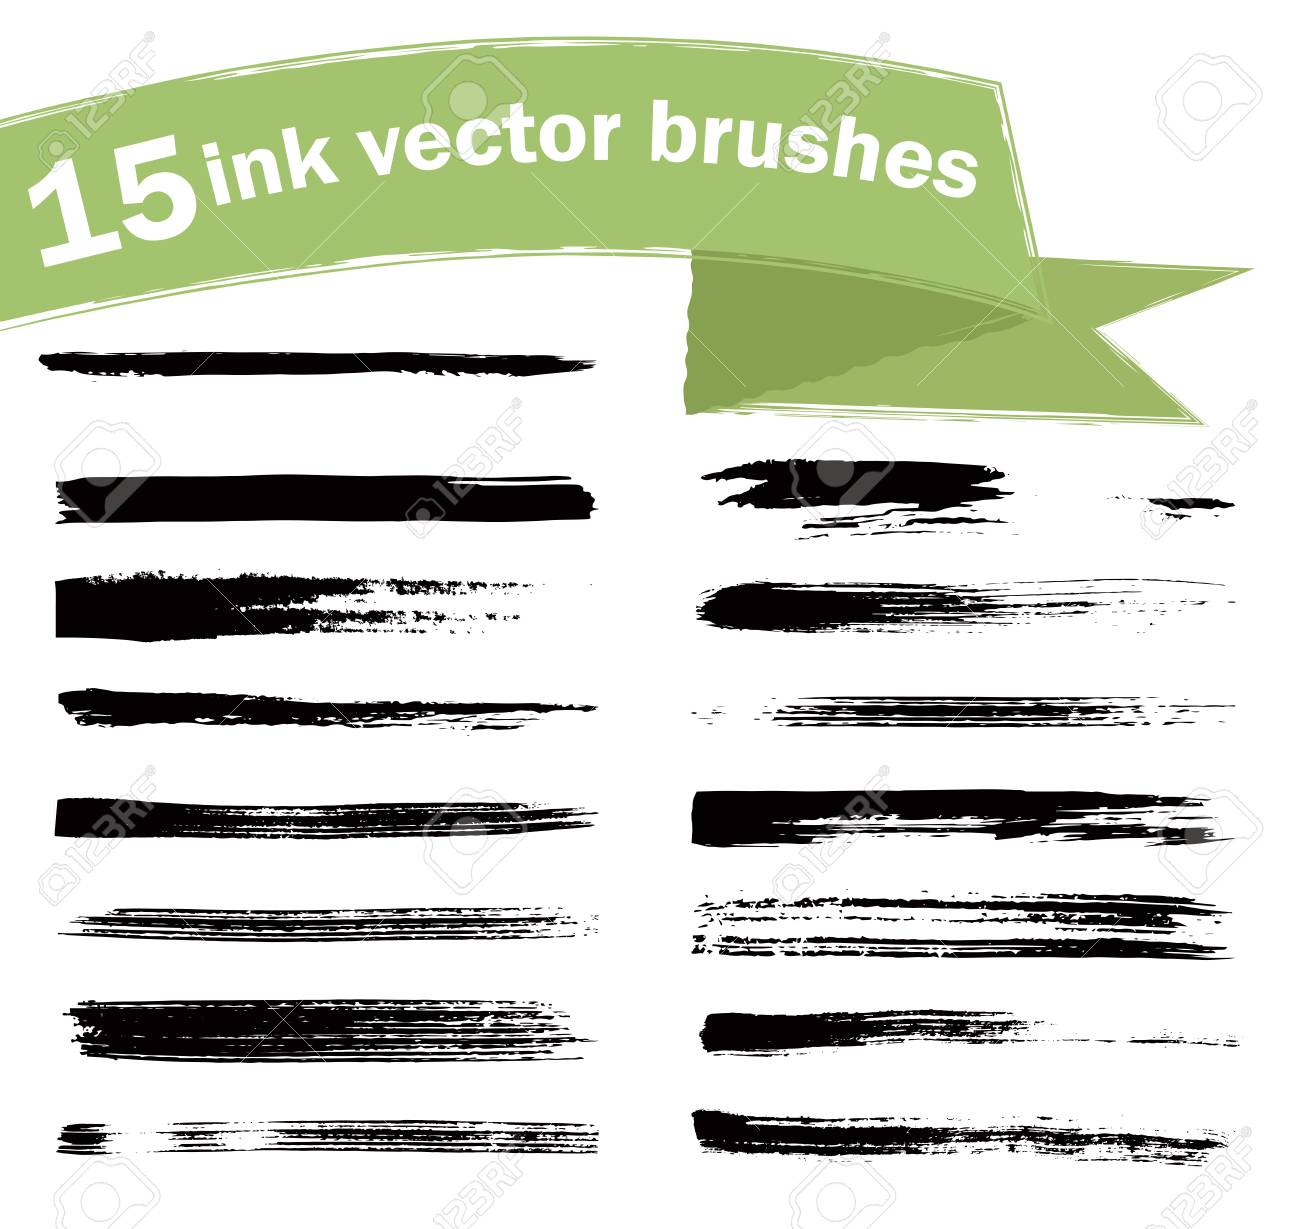 15 ink vector brushes  Paint brush strokes  Elements for design